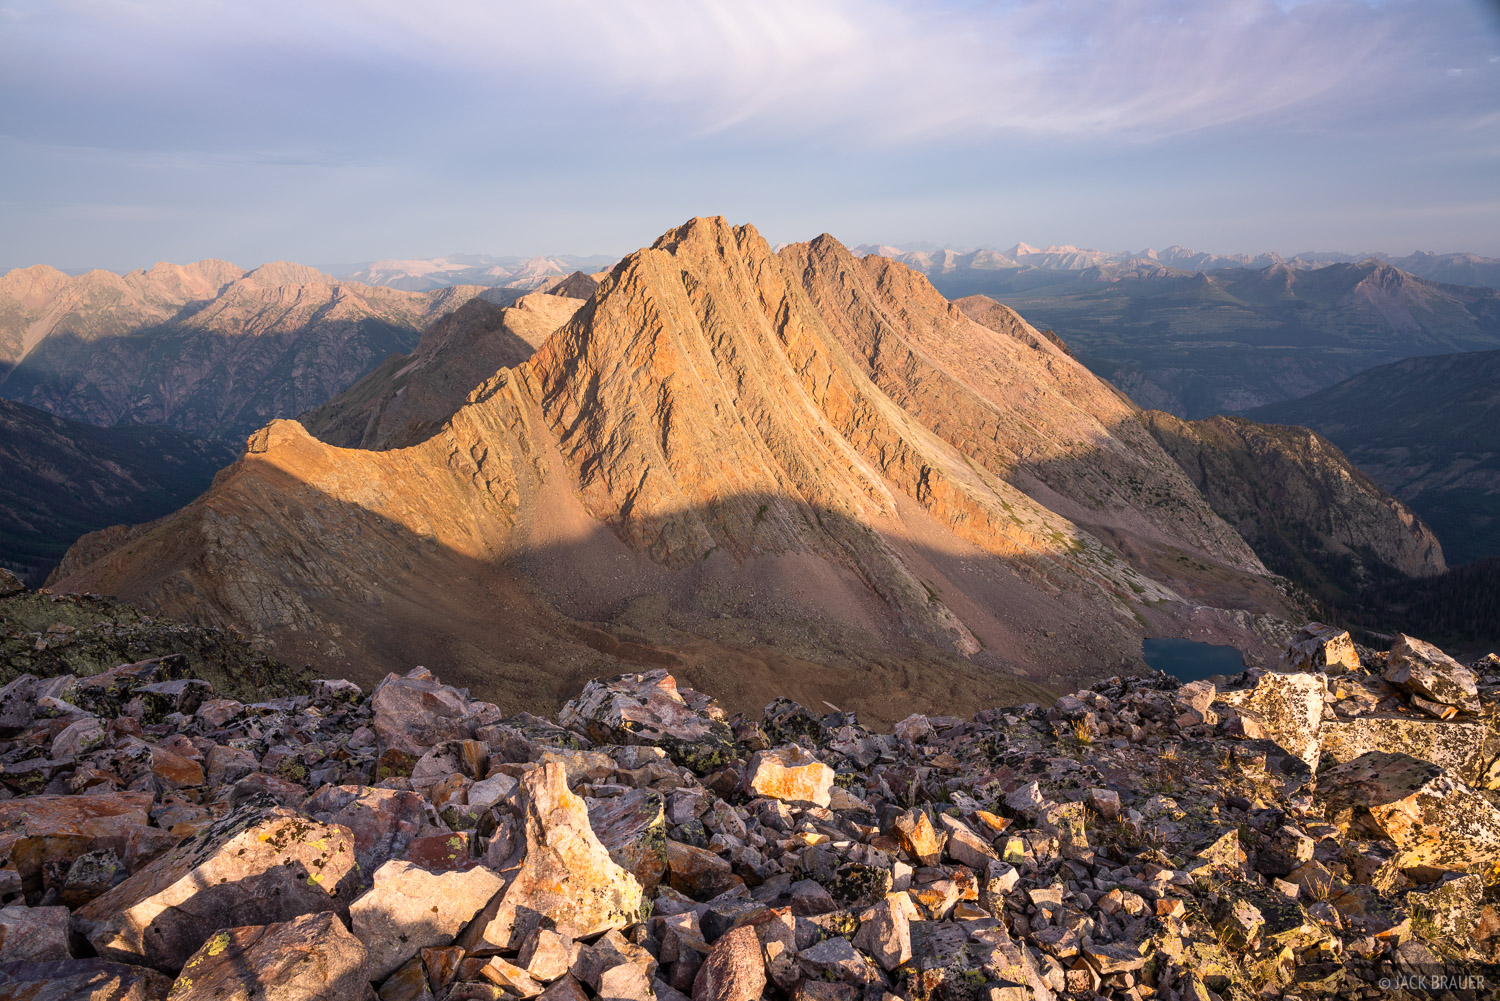 Sunrise light on Vestal Peak (13,664 ft) and its curved profile of Wham Ridge.